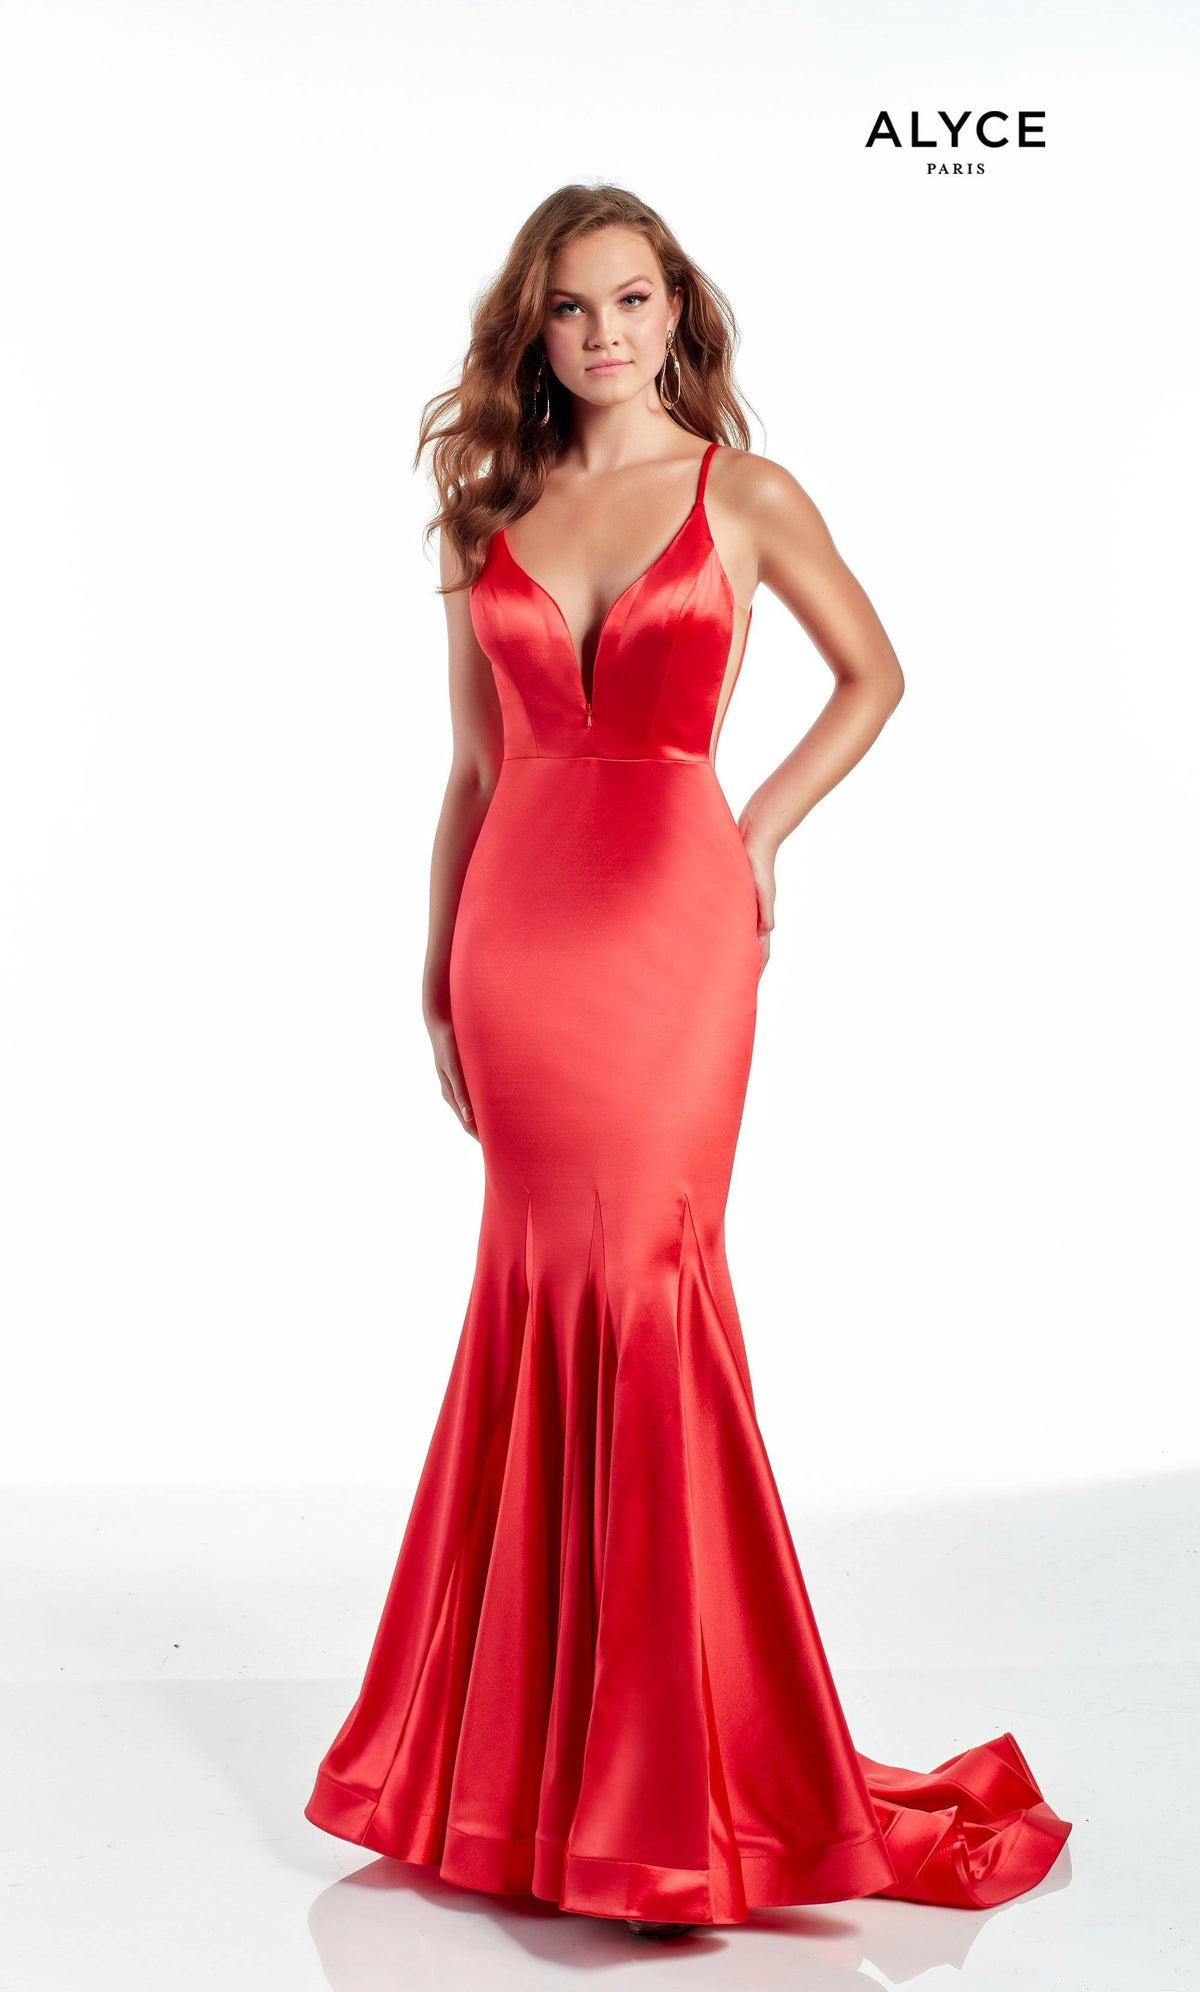 Red fit and flare prom dress with an adjustable plunging neckline